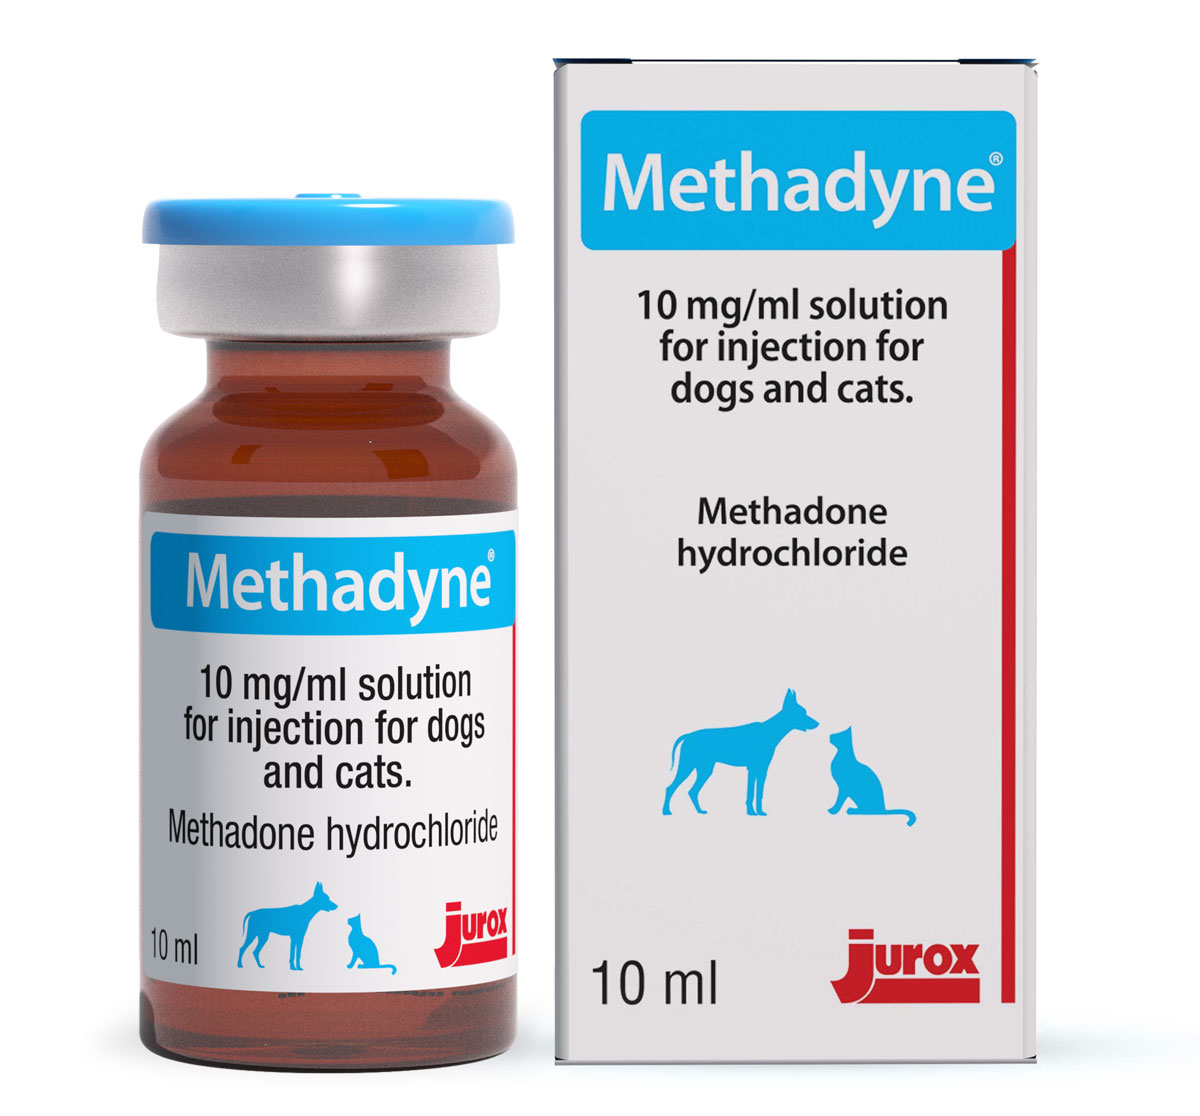 Methadyne